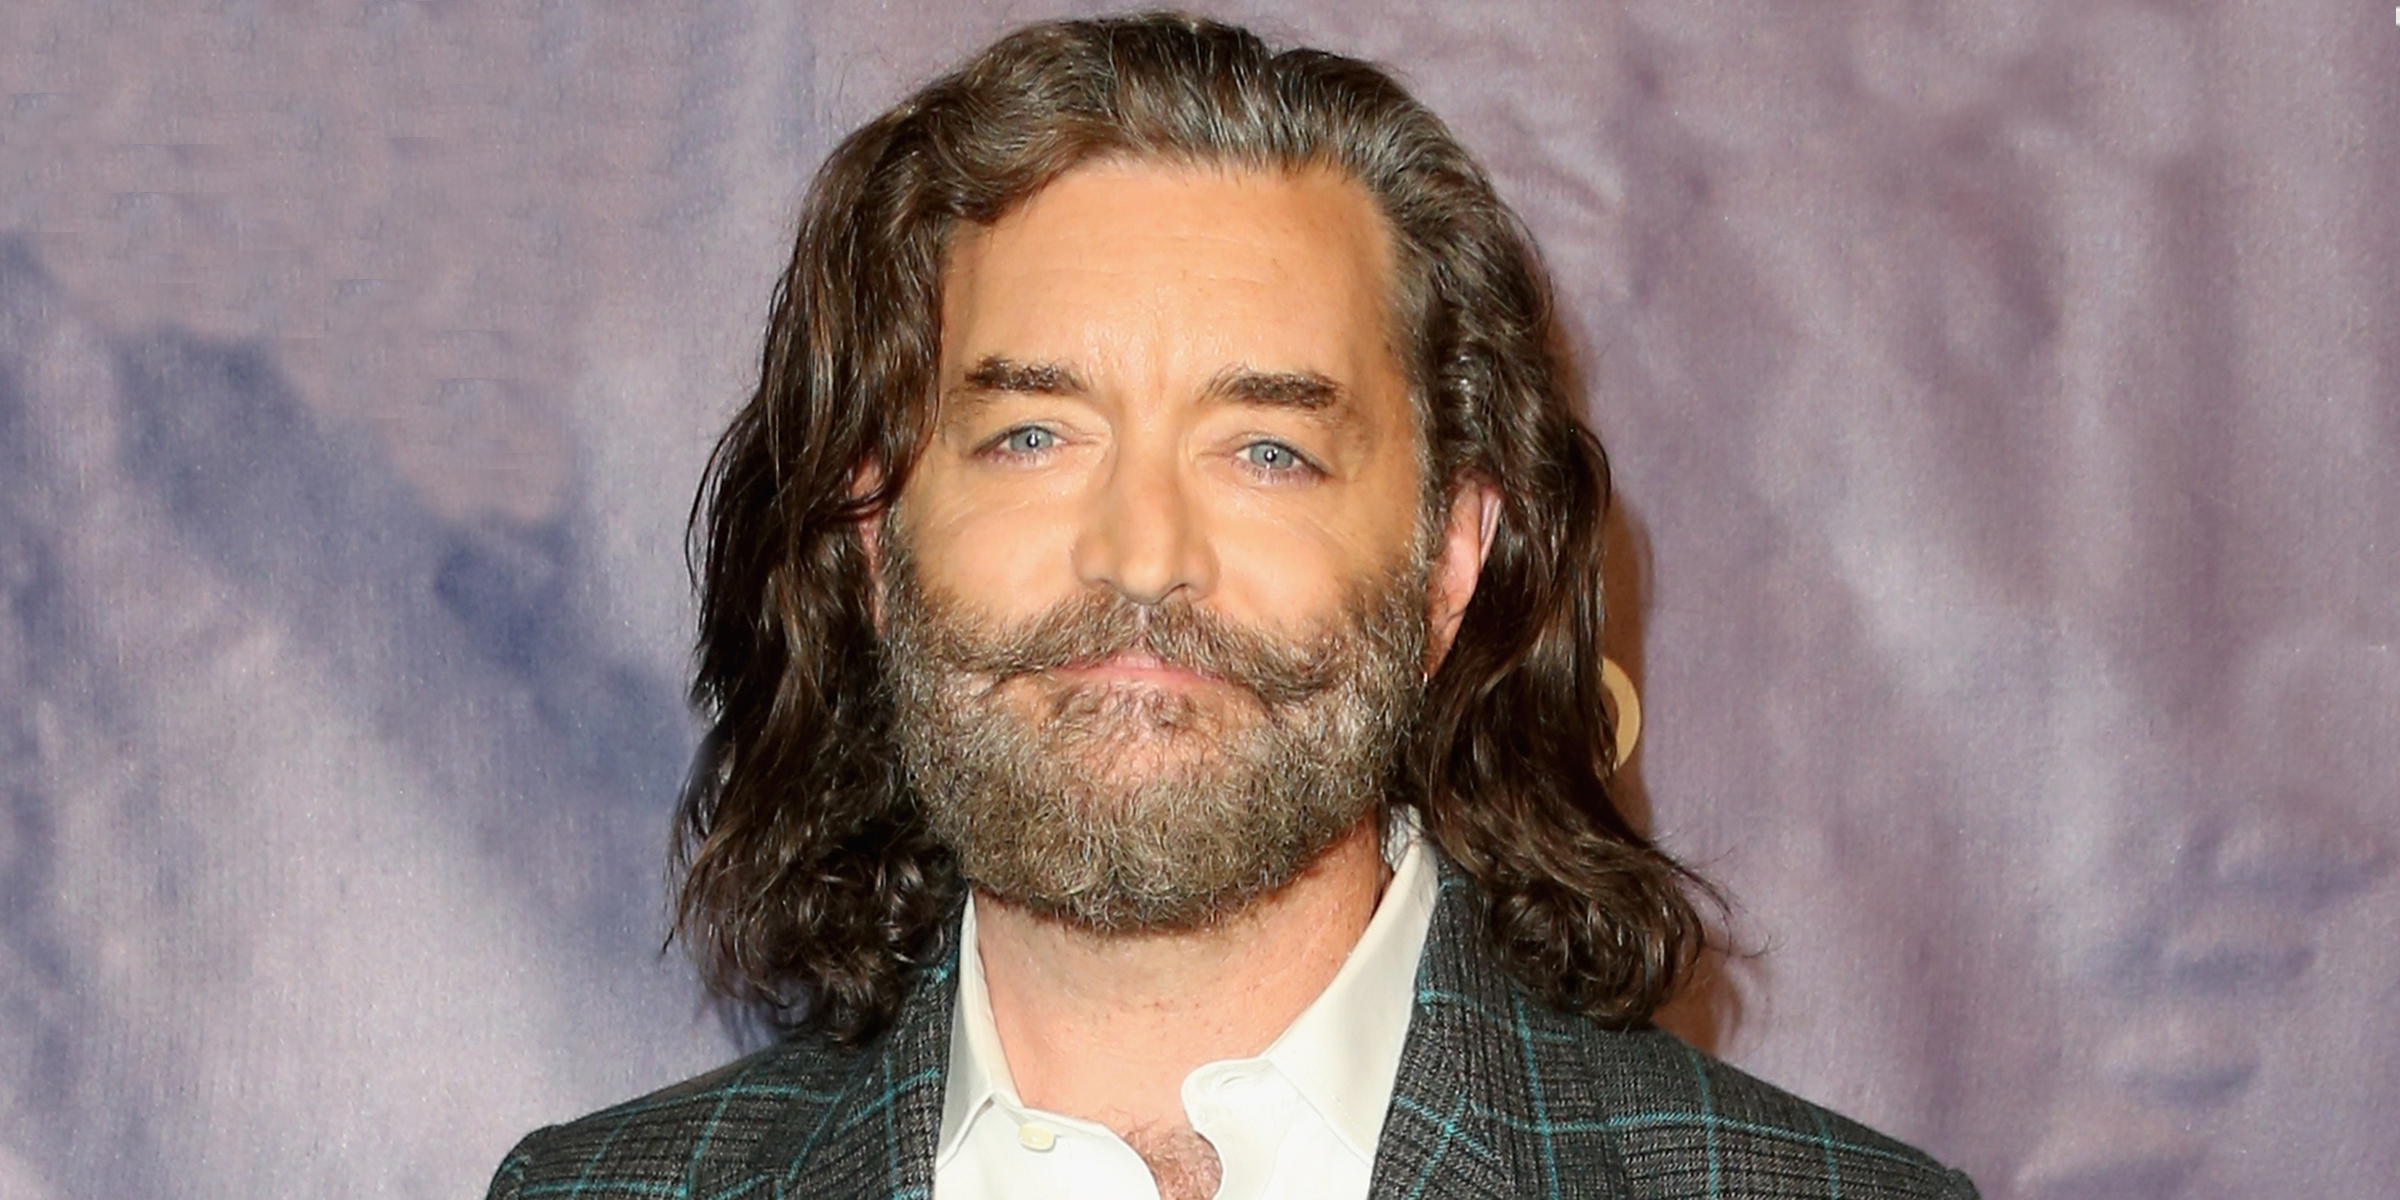 'Psych' actor Timothy Omundson joins 'This Is Us' 2 years after having stroke